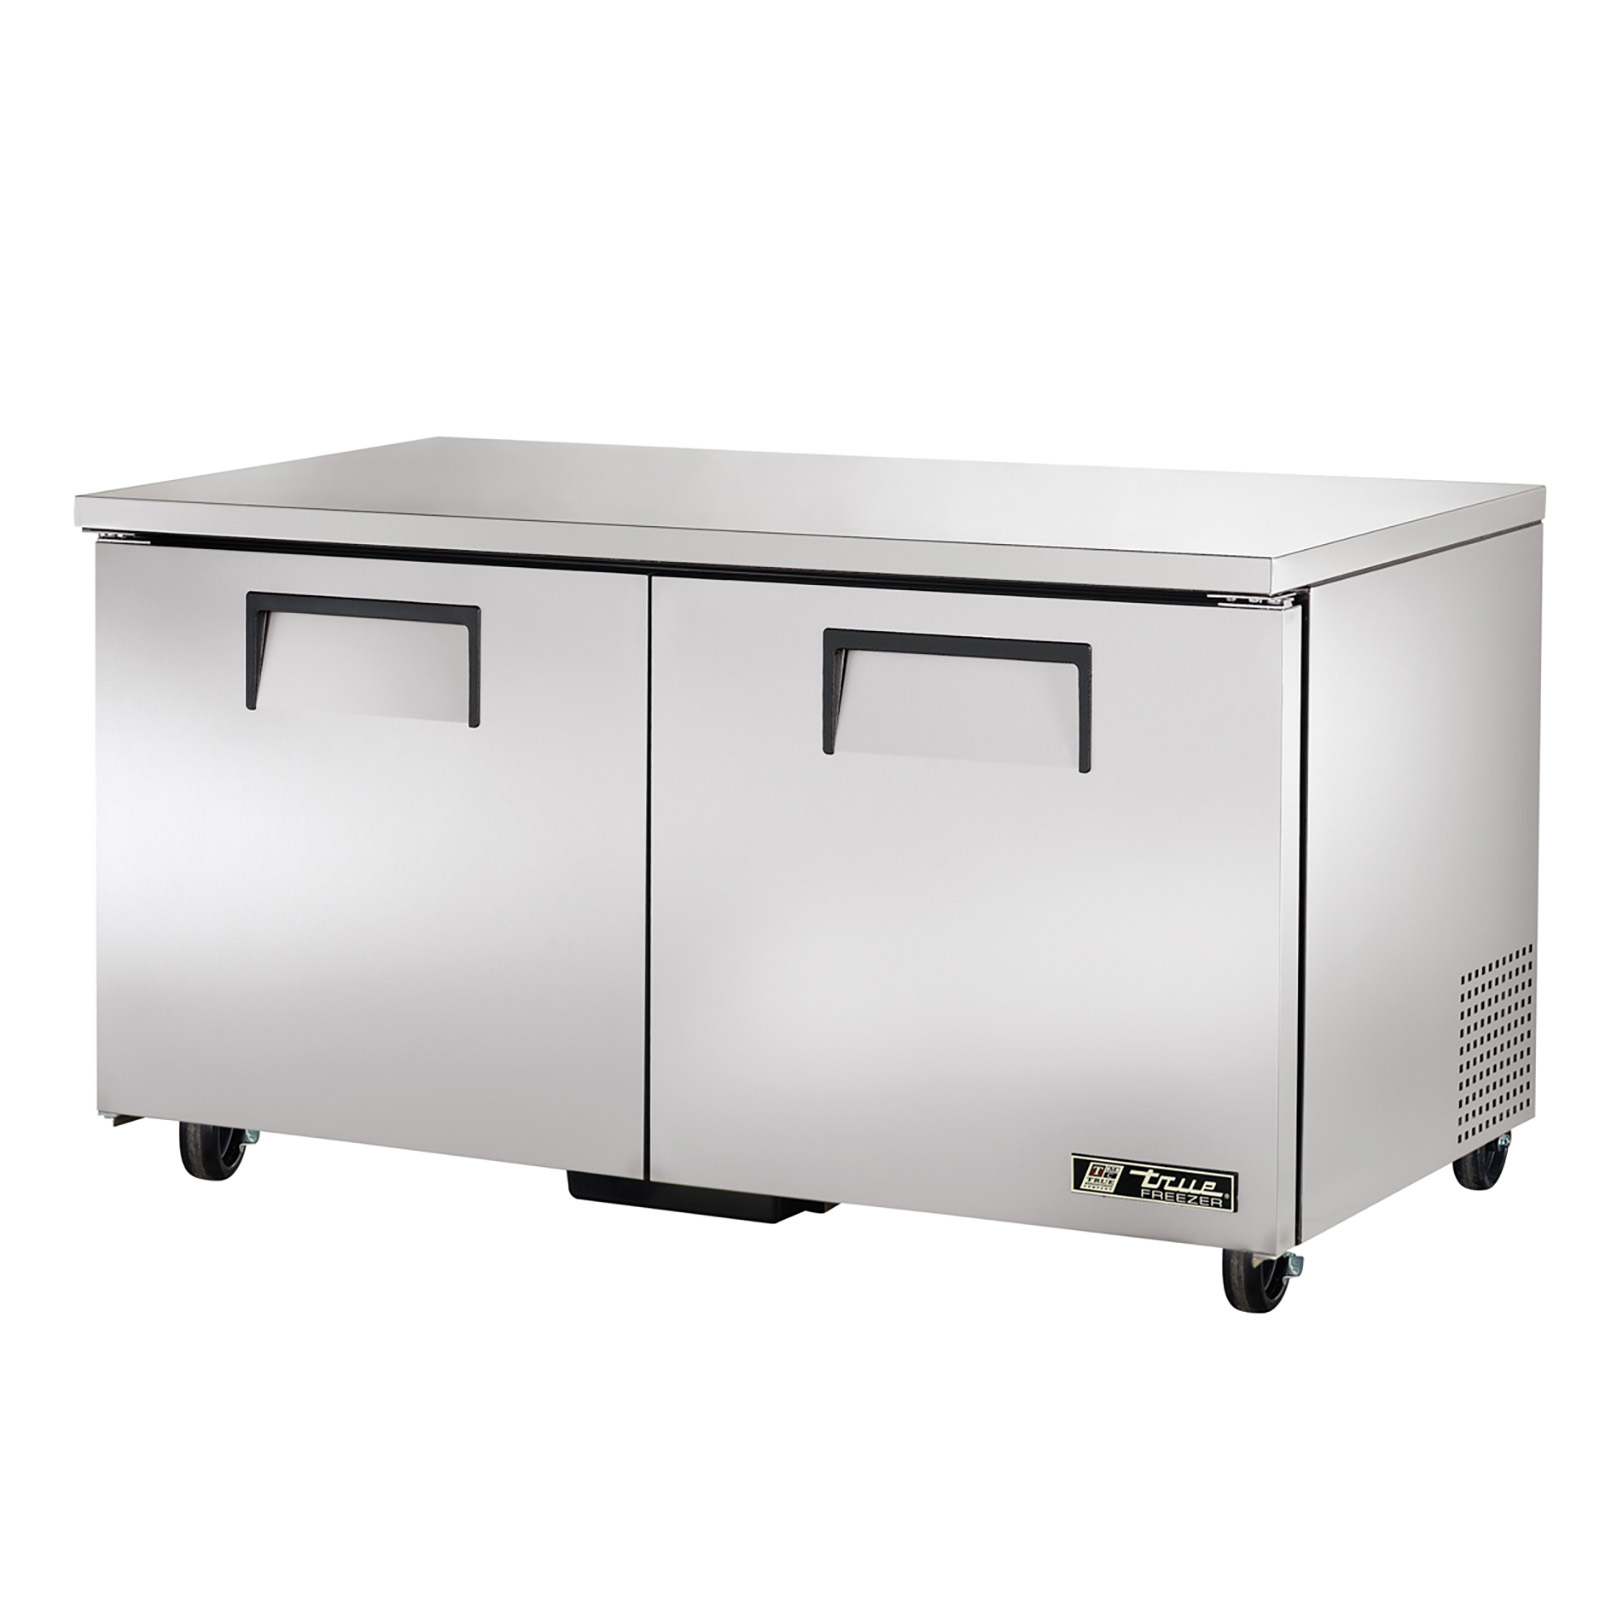 TUC-60F True - Undercounter Freezer -10? F